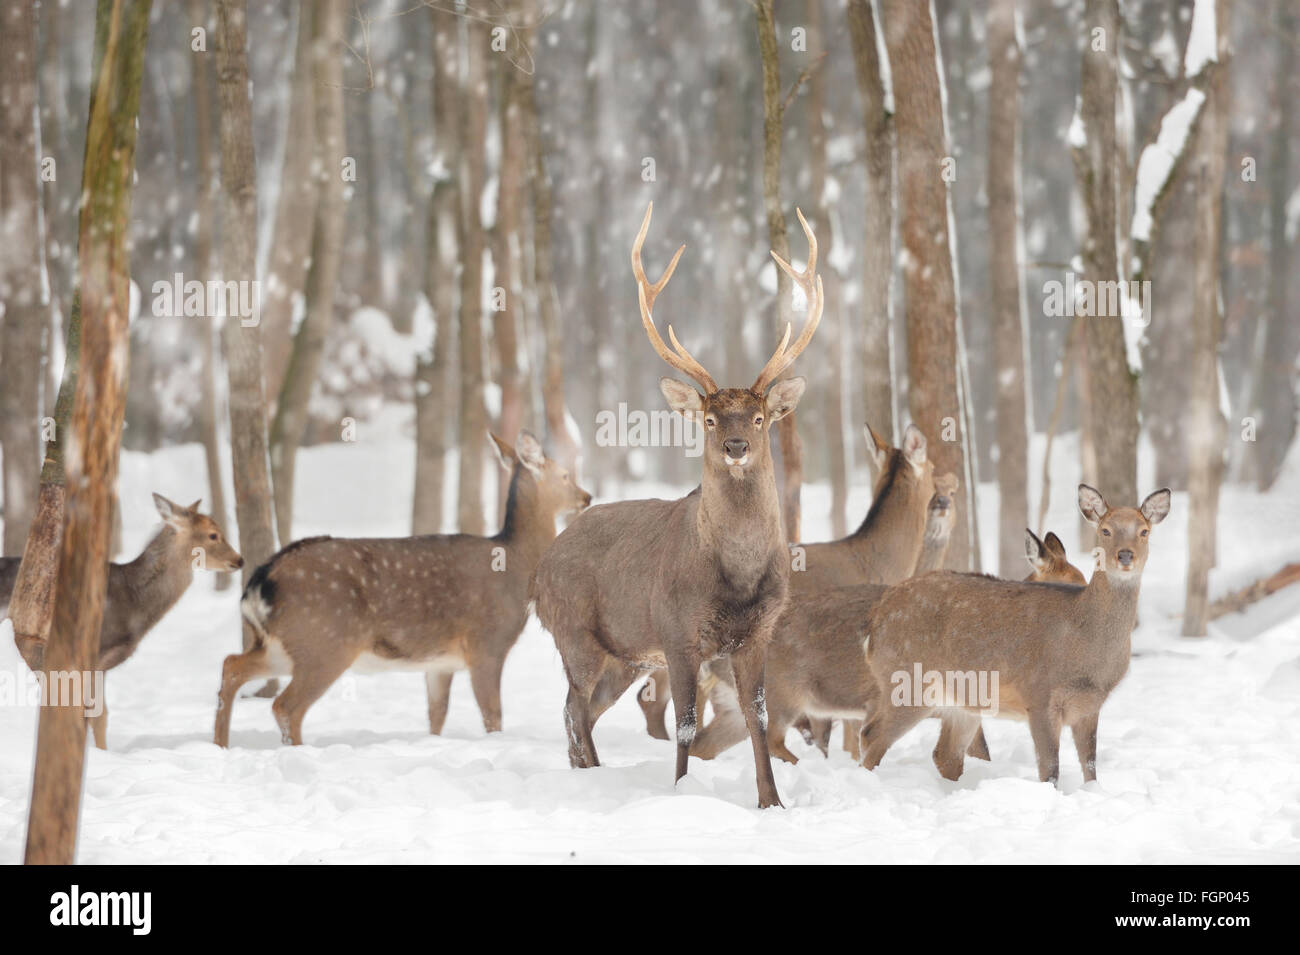 Young deer in winter forest - Stock Image